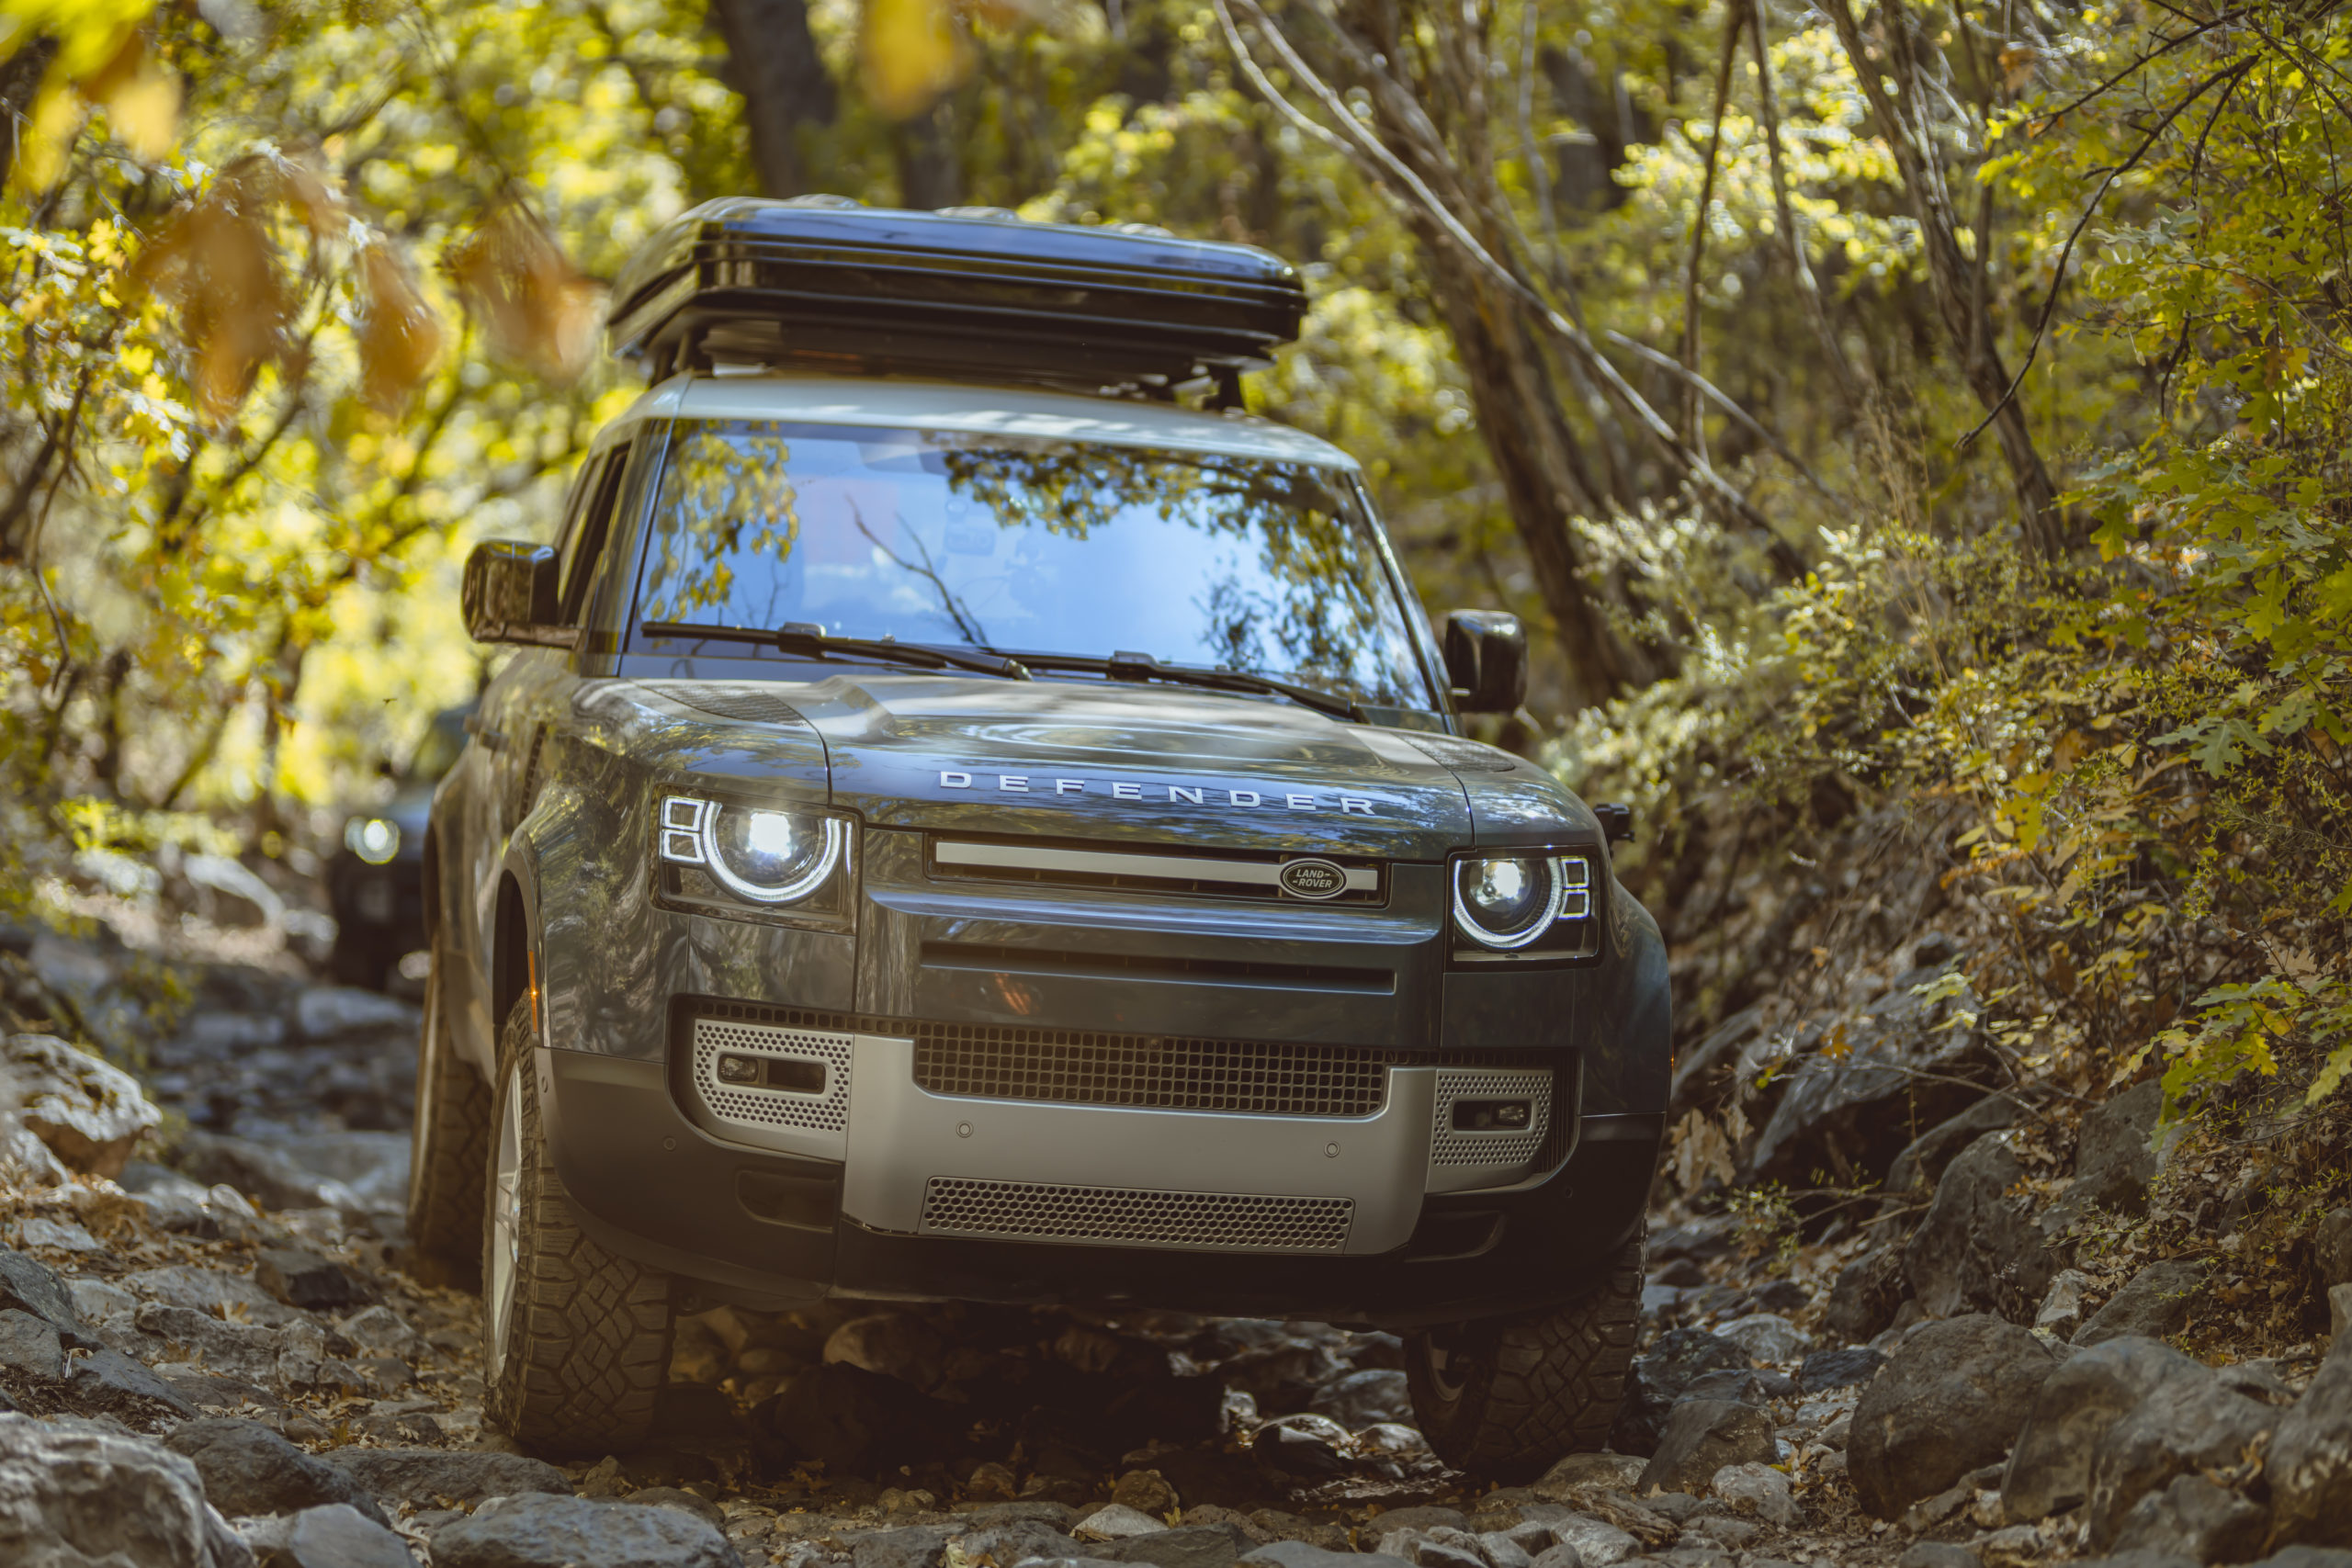 2021 Land Rover Defender on rocky trail